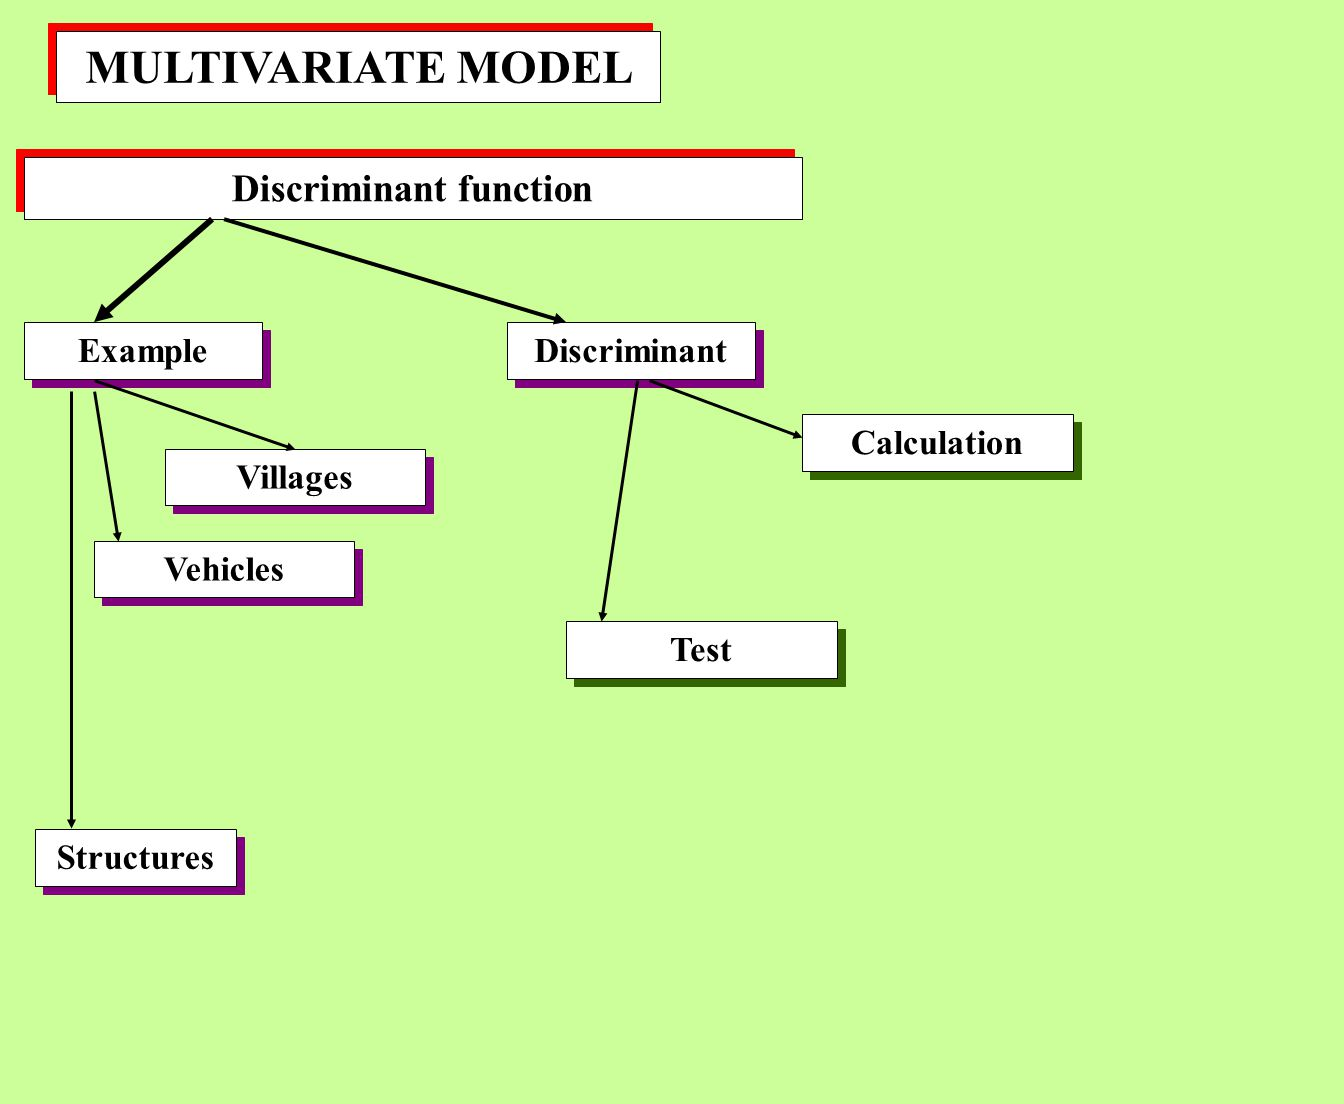 MULTIVARIATE MODEL Discriminant function Example Discriminant Vehicles Villages Calculation Structures Test